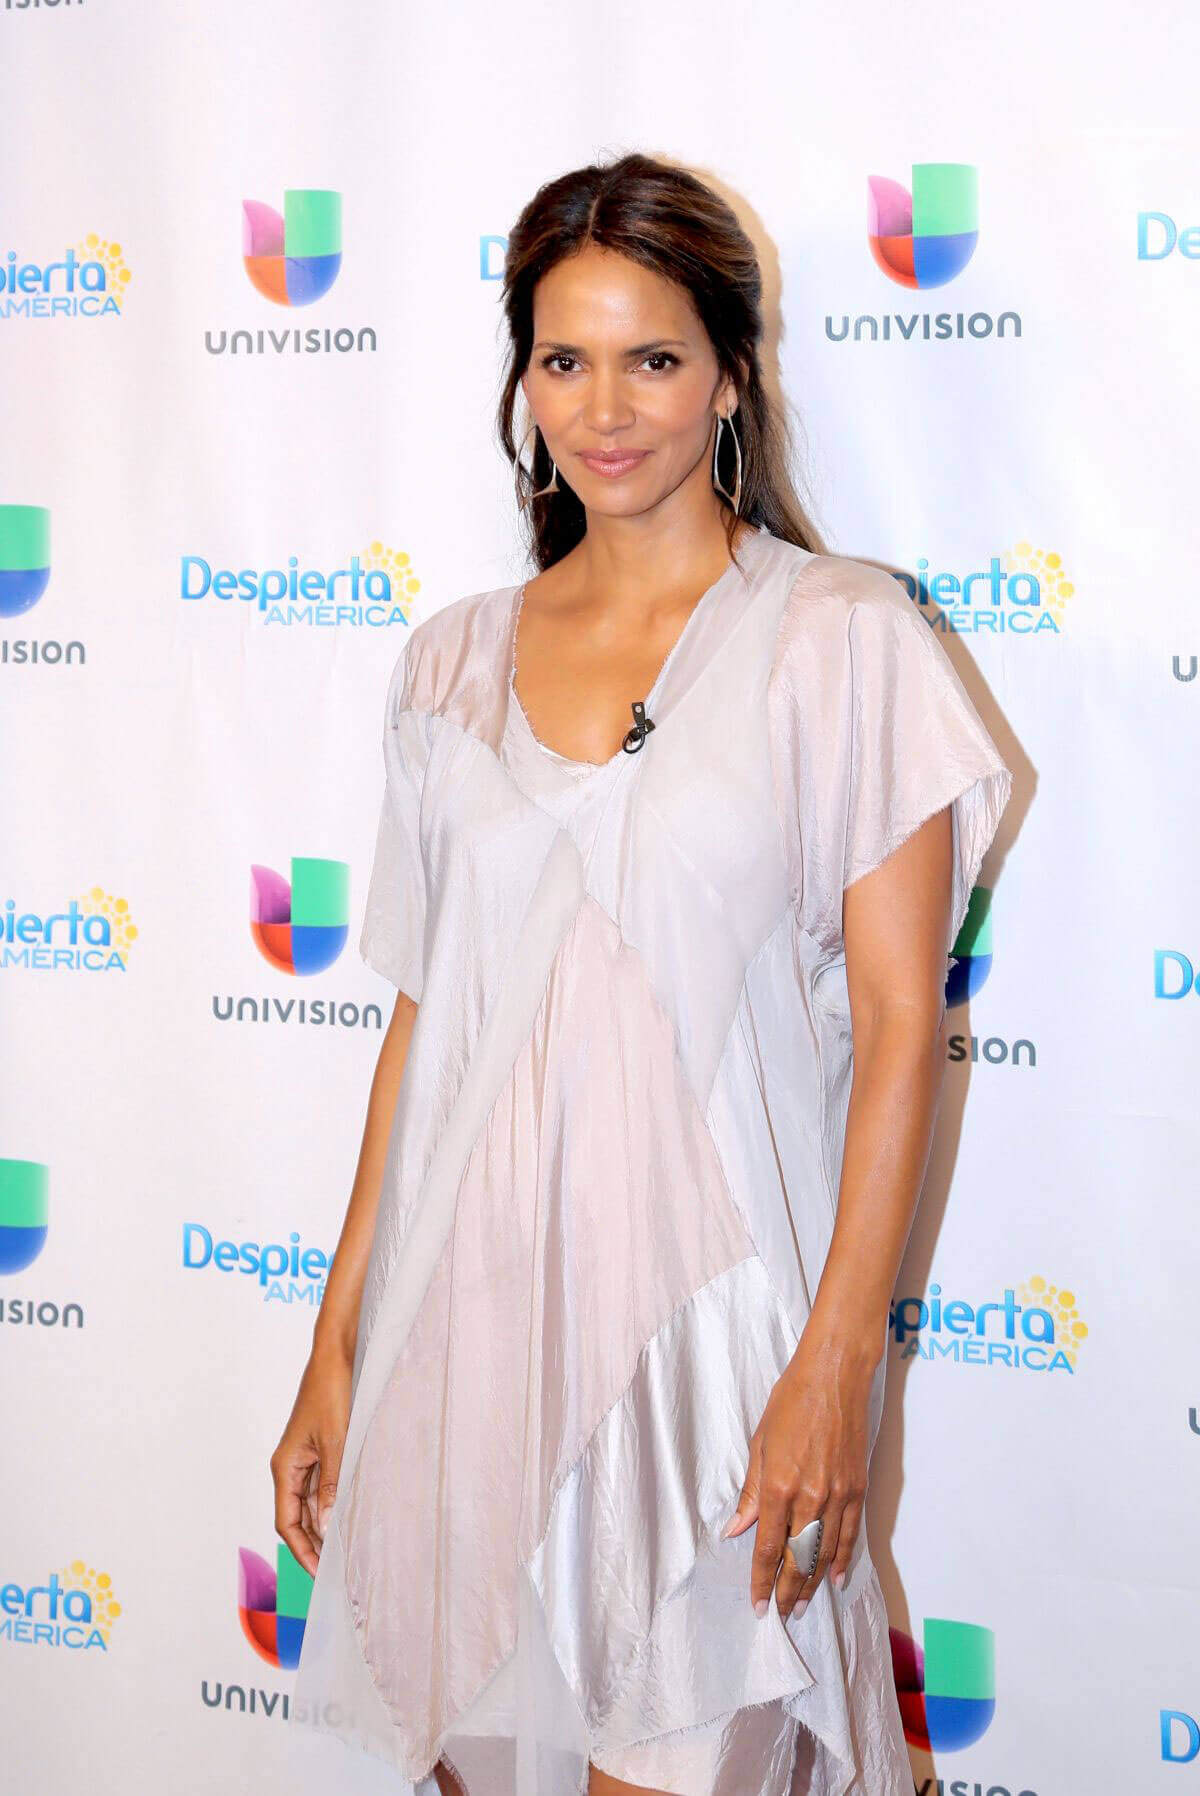 Halle Berry Stills on the Set of Despierta America in New York Images